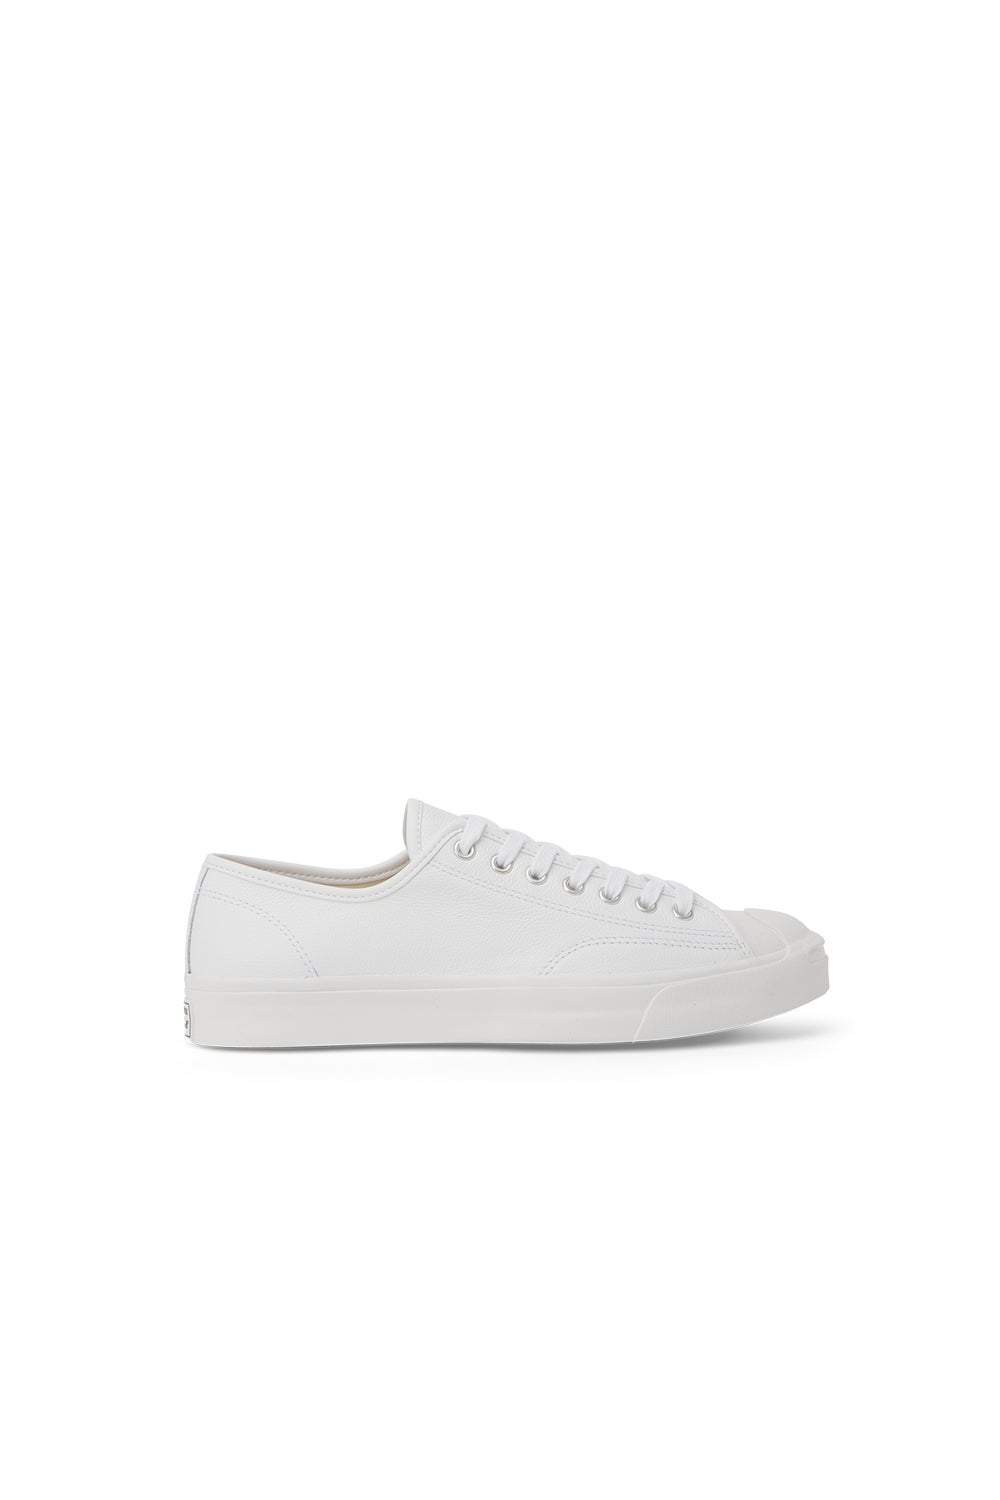 Converse Jack Purcell Foundational Leather Low White